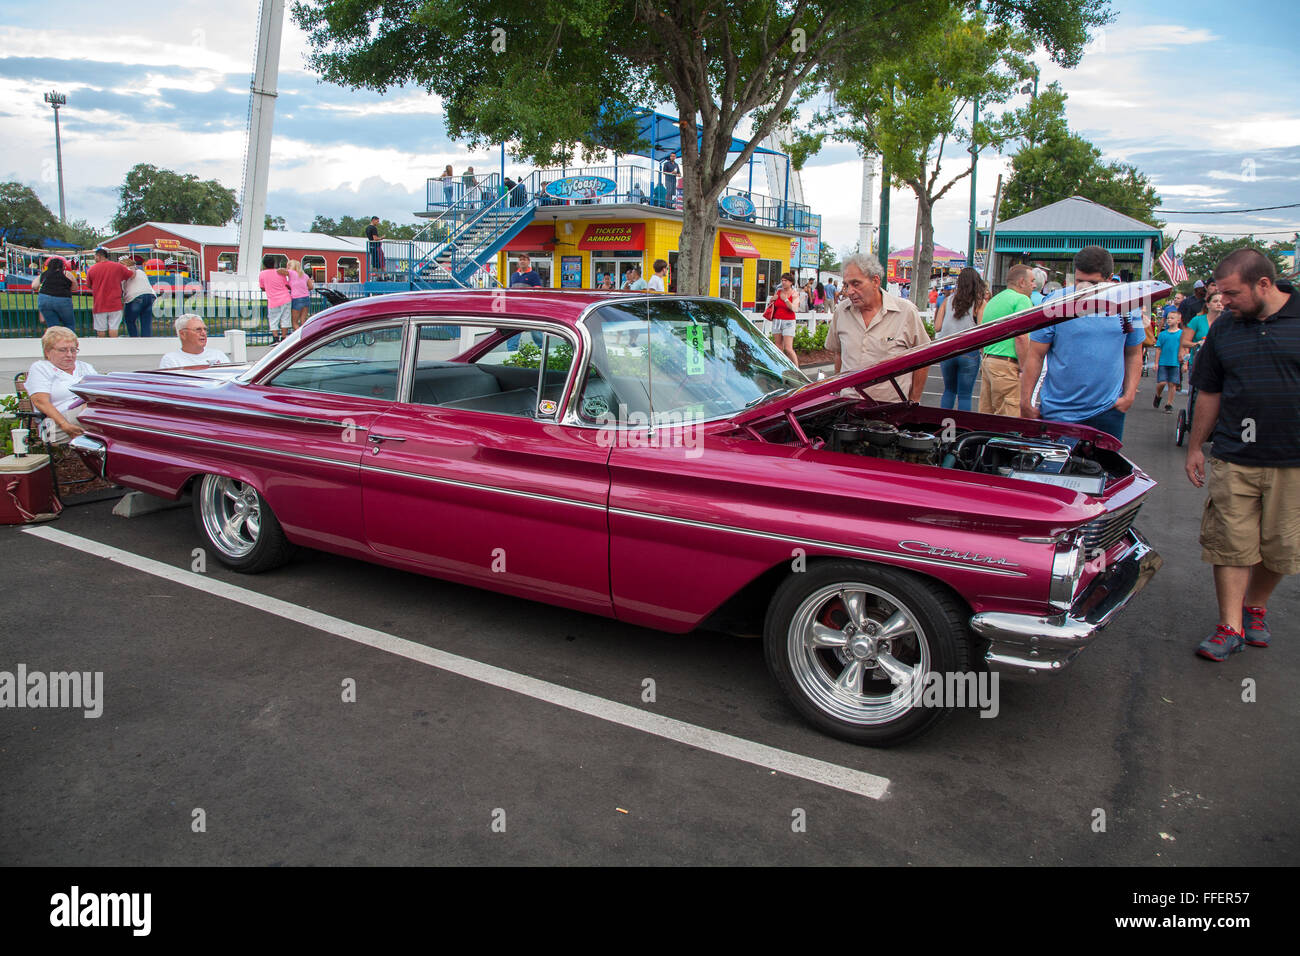 Pontiac Catalina At Kissimmee Old Town Weekly Car Cruise Kissimmee - Weekly car shows near me